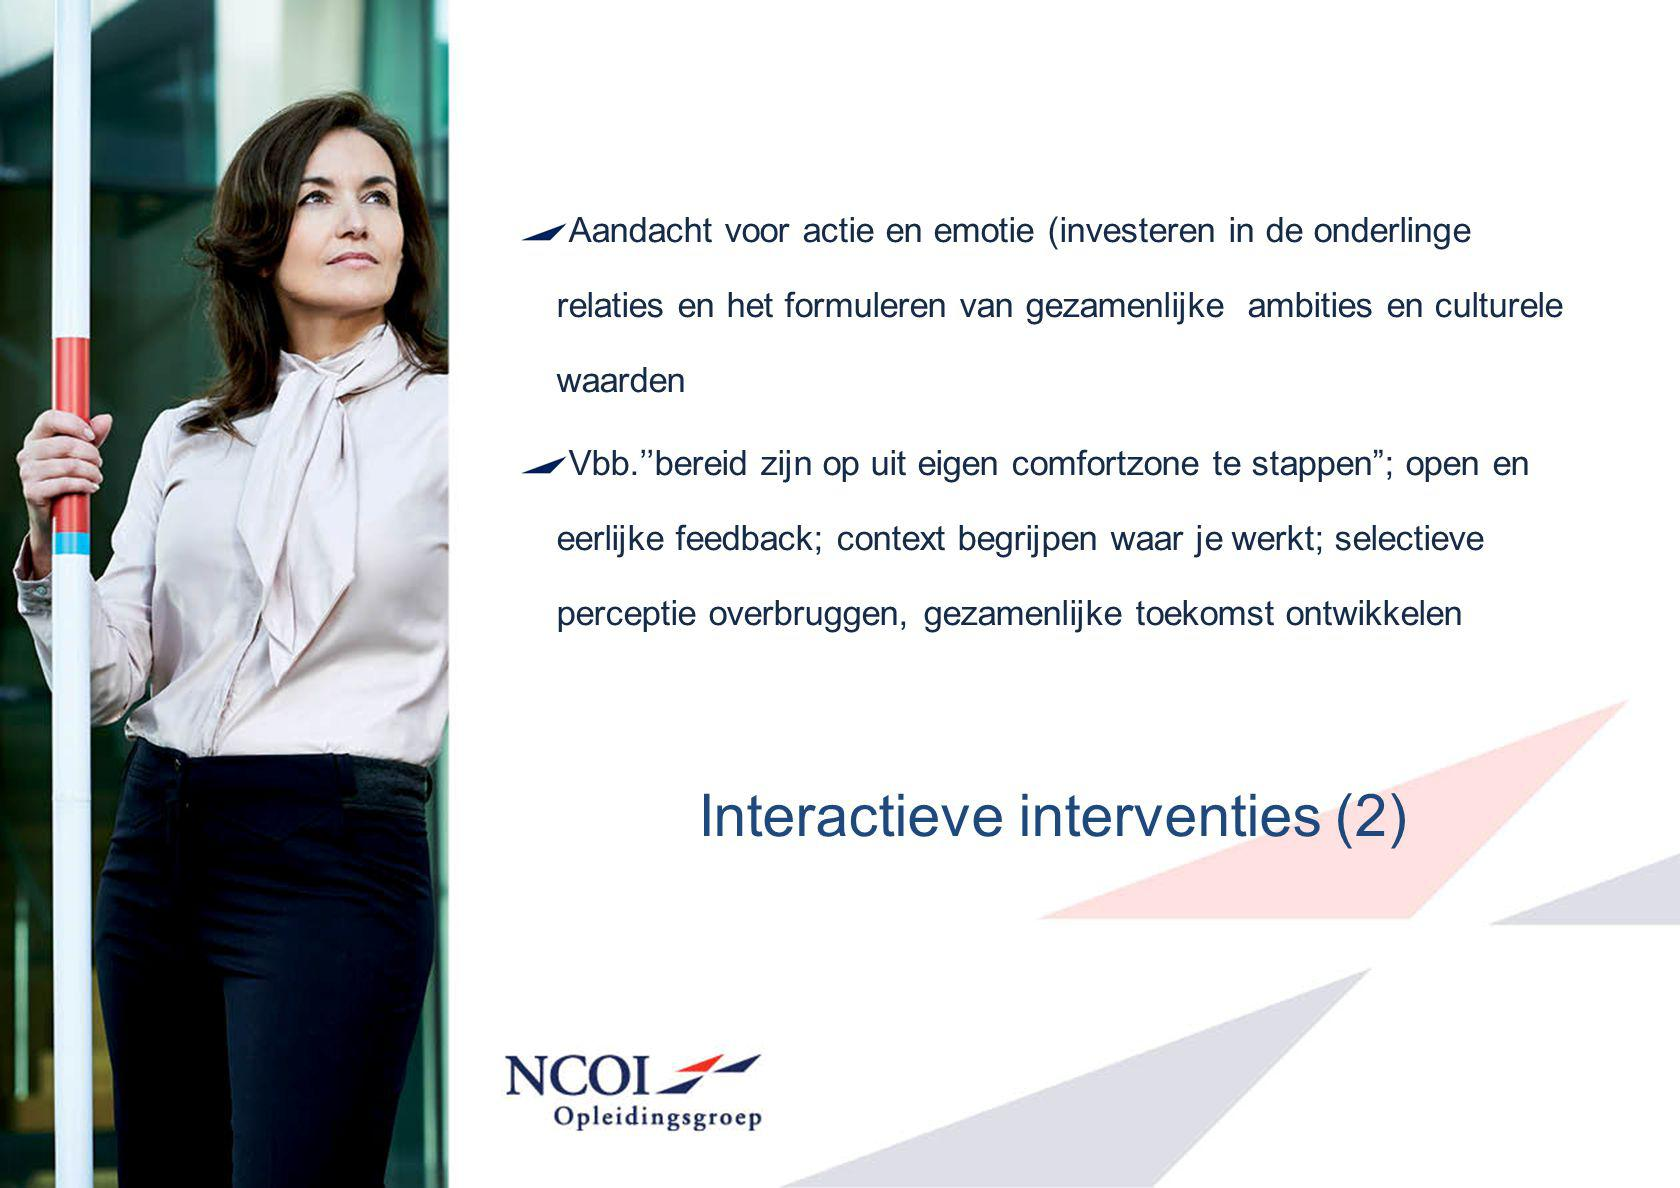 Interactieve interventies (2)